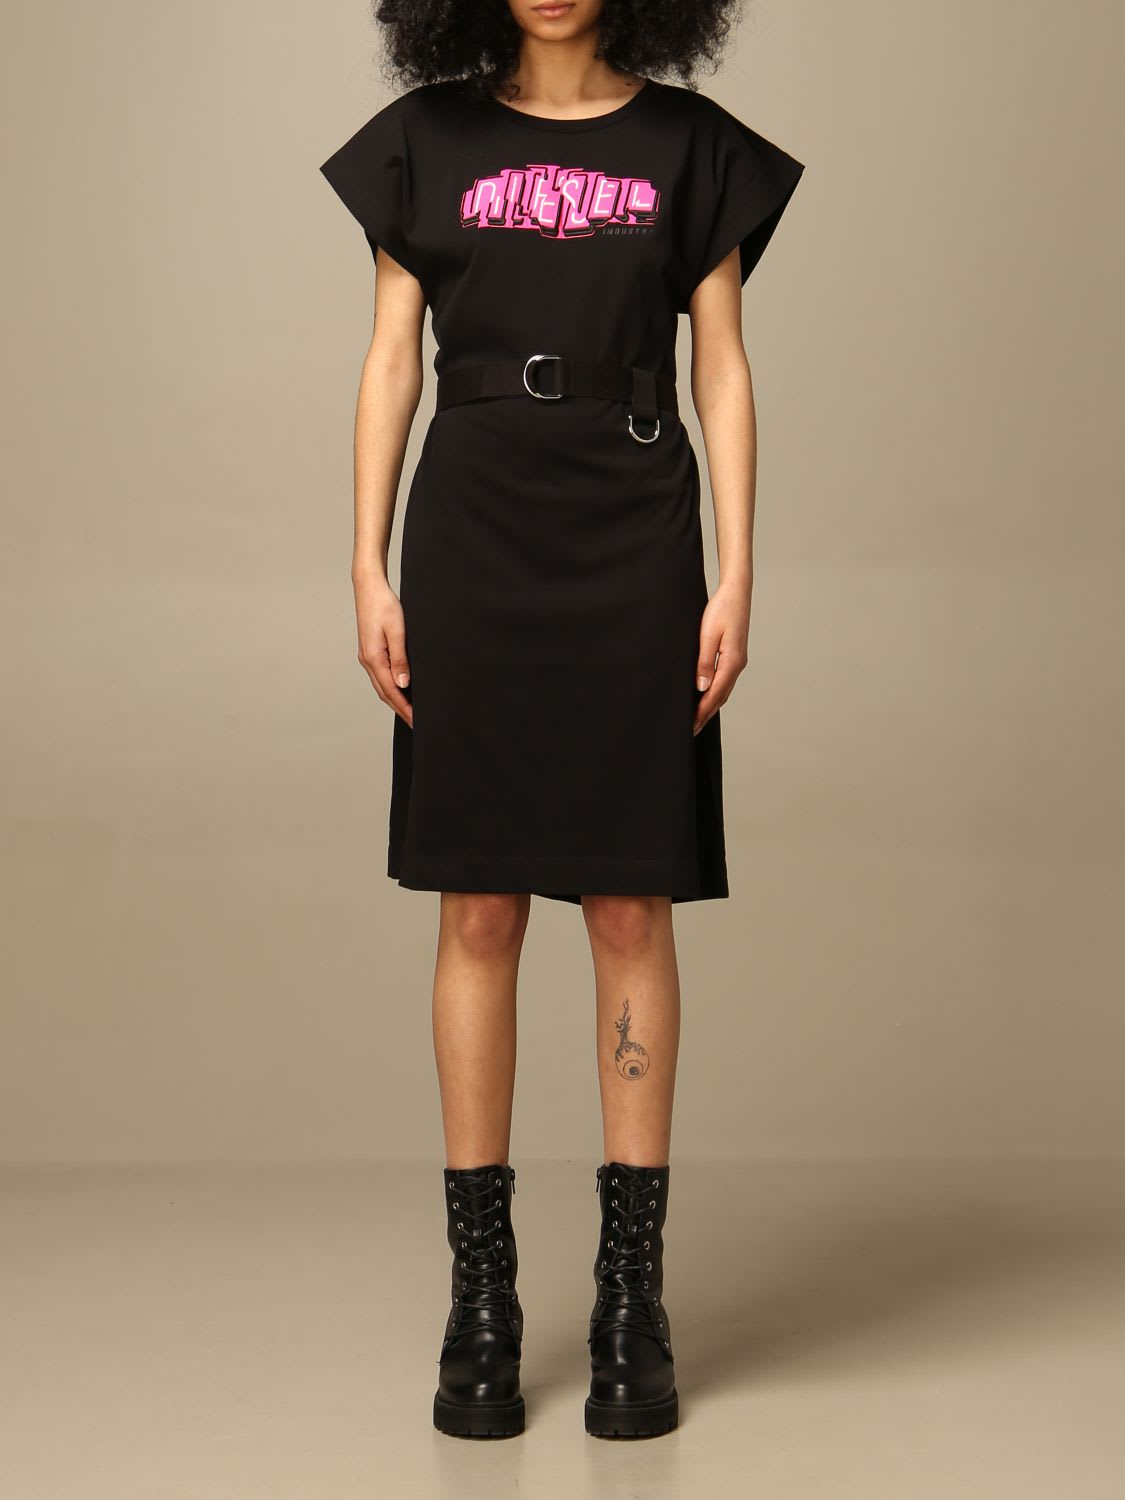 Buy Diesel Dress Diesel Short Dress In Cotton With Logo online, shop Diesel with free shipping